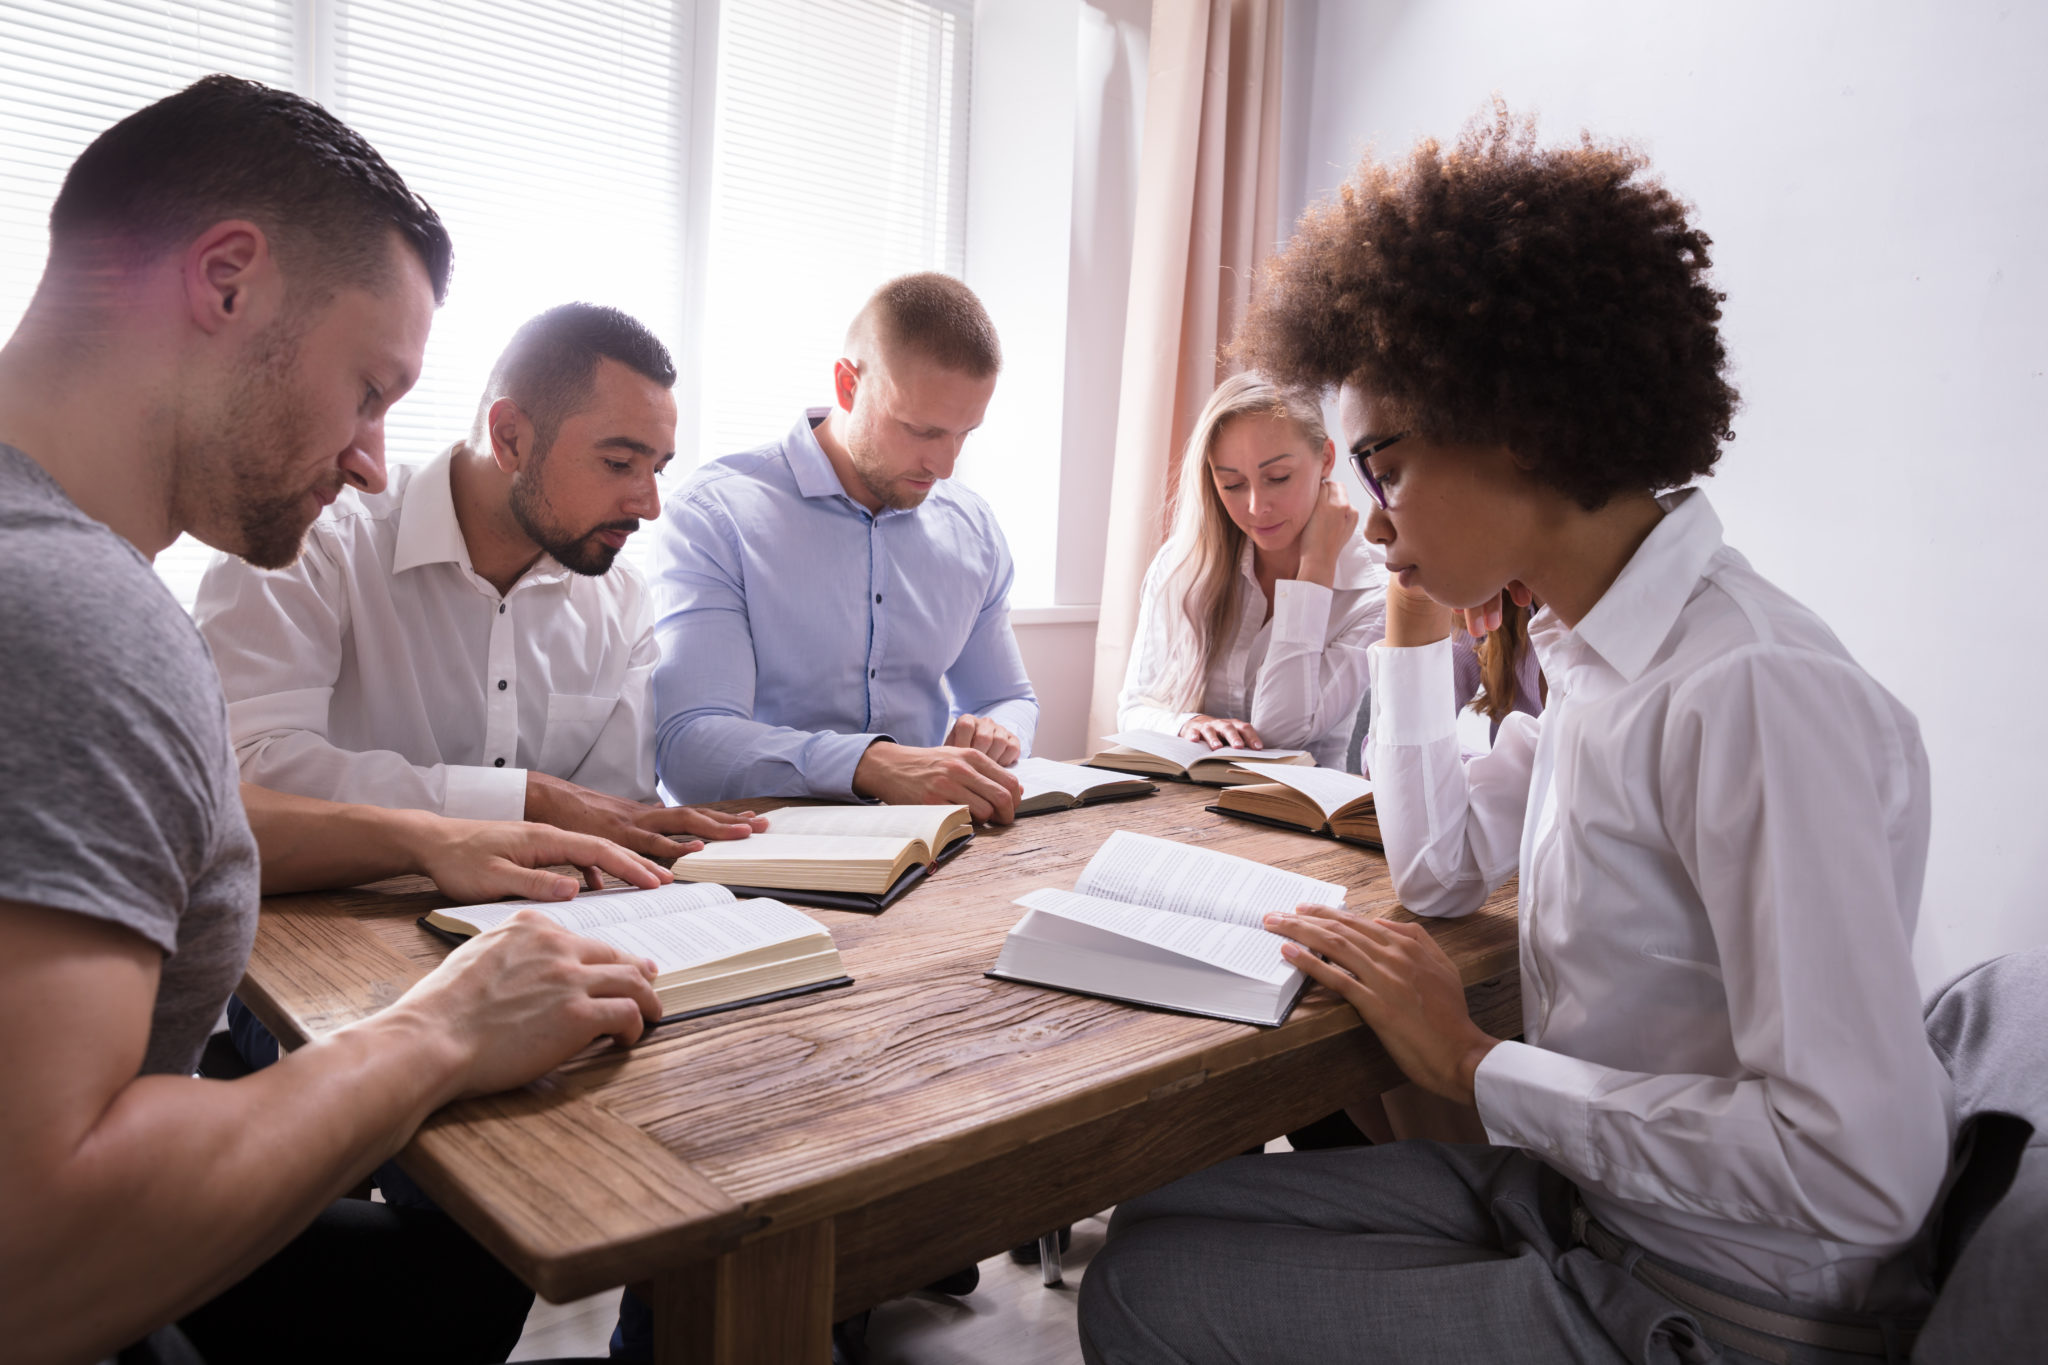 Group,Of,Young,Multiethnic,People,Reading,Bible,Over,Wooden,Desk